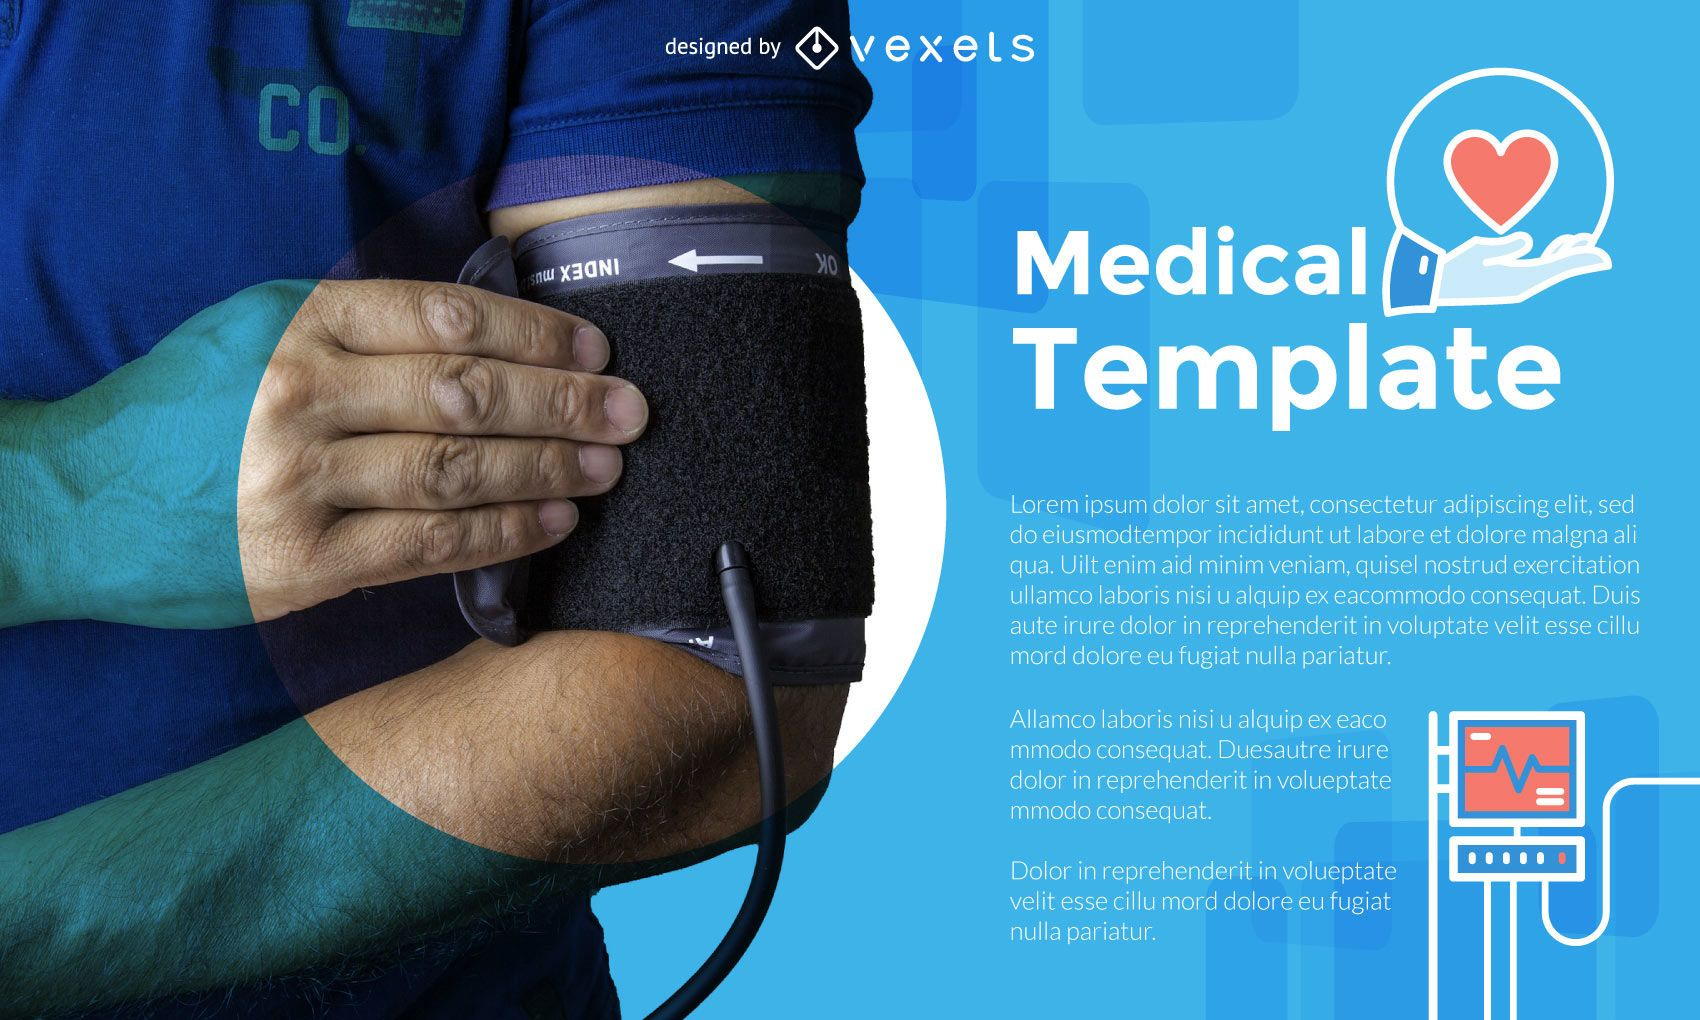 Medical template design with image and text